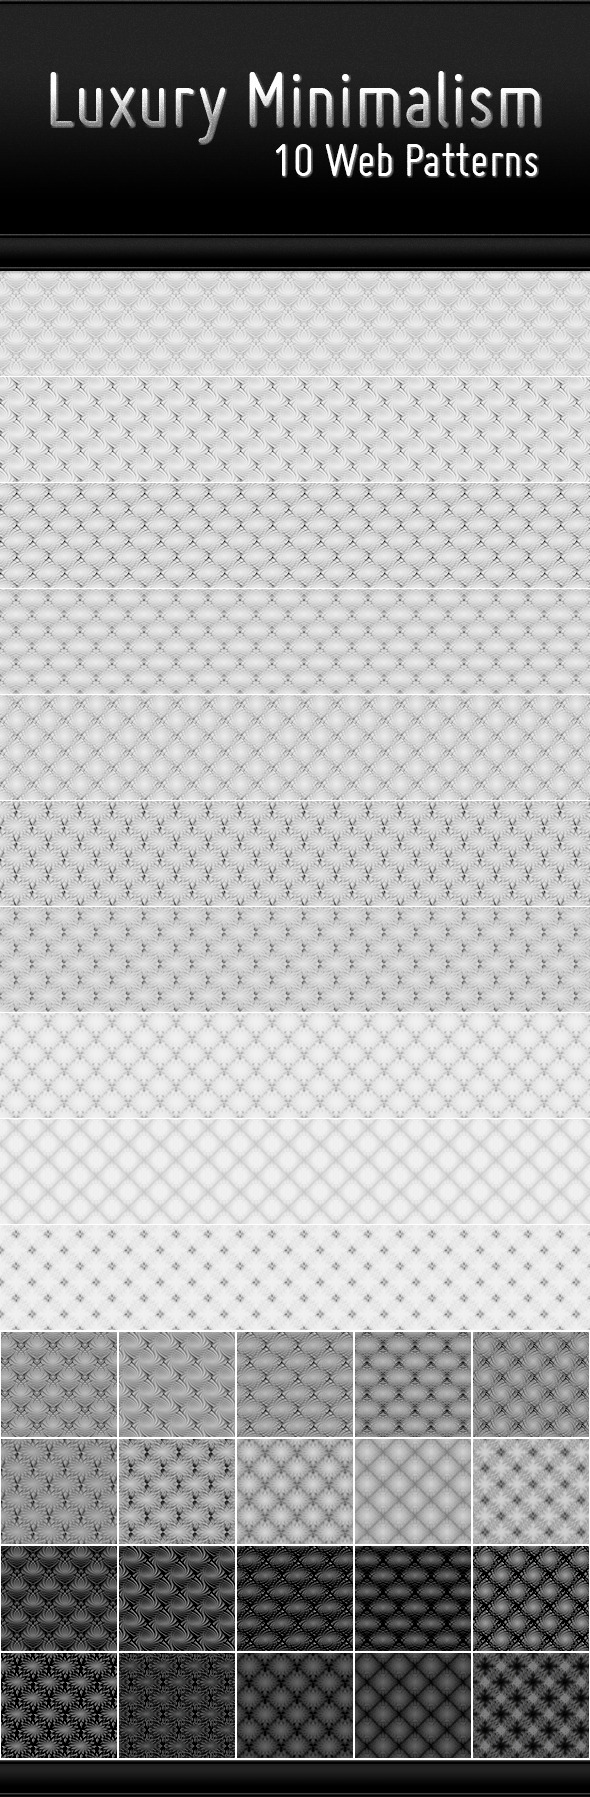 Luxury Minimalism - 10 Web Patterns - Abstract Textures / Fills / Patterns